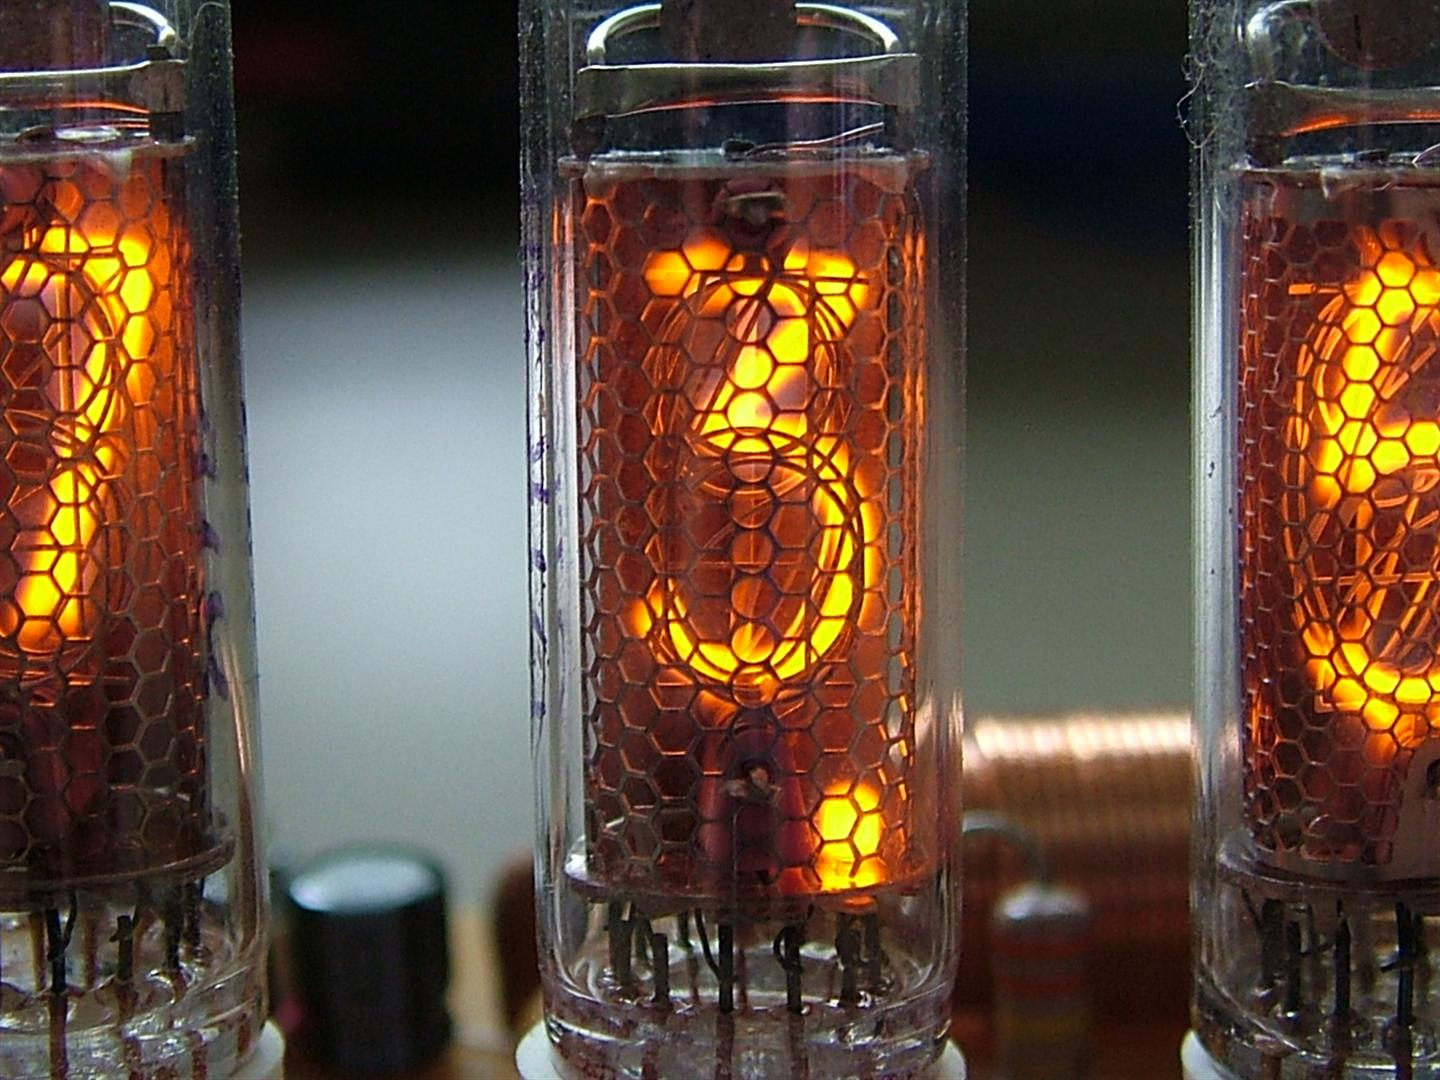 The Life Of Kenneth Avr Nixie Tube Thermometer Schematic My 6 Digit Clock Here Are Some Photos Tubes Were Originally Used In 1950s And 1960s Before Led Lcd Segmented Displays Developed To Display Numerical Information From